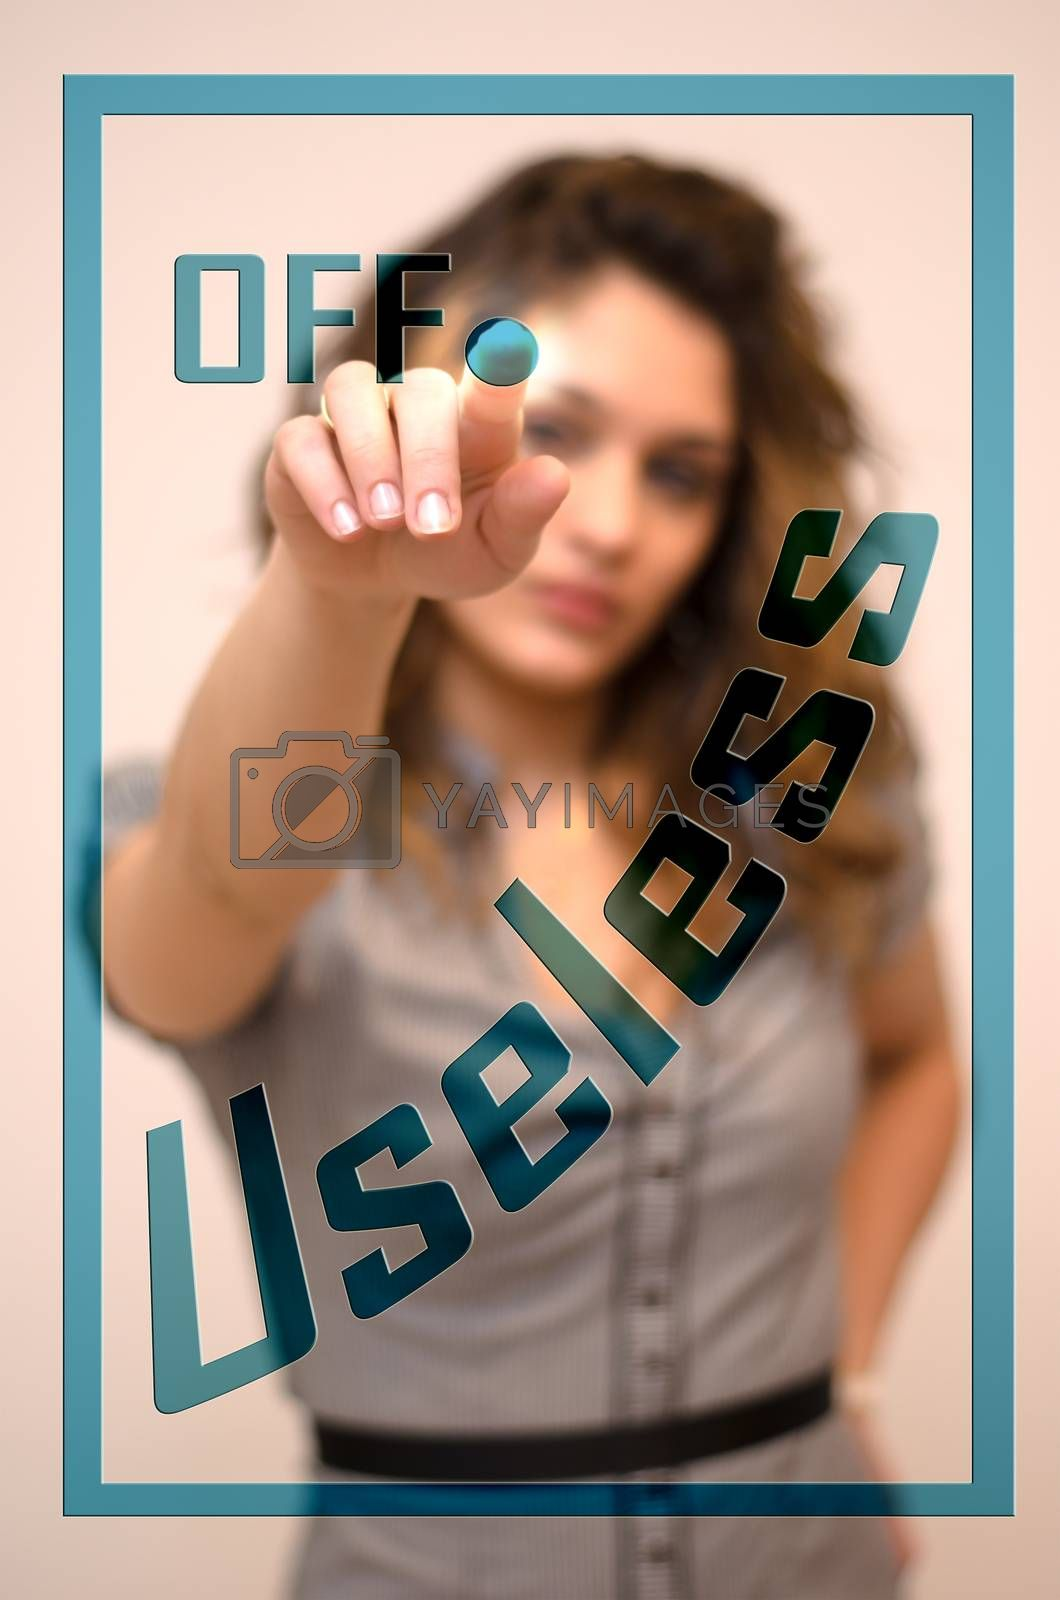 young woman turning off Useless on digital panel